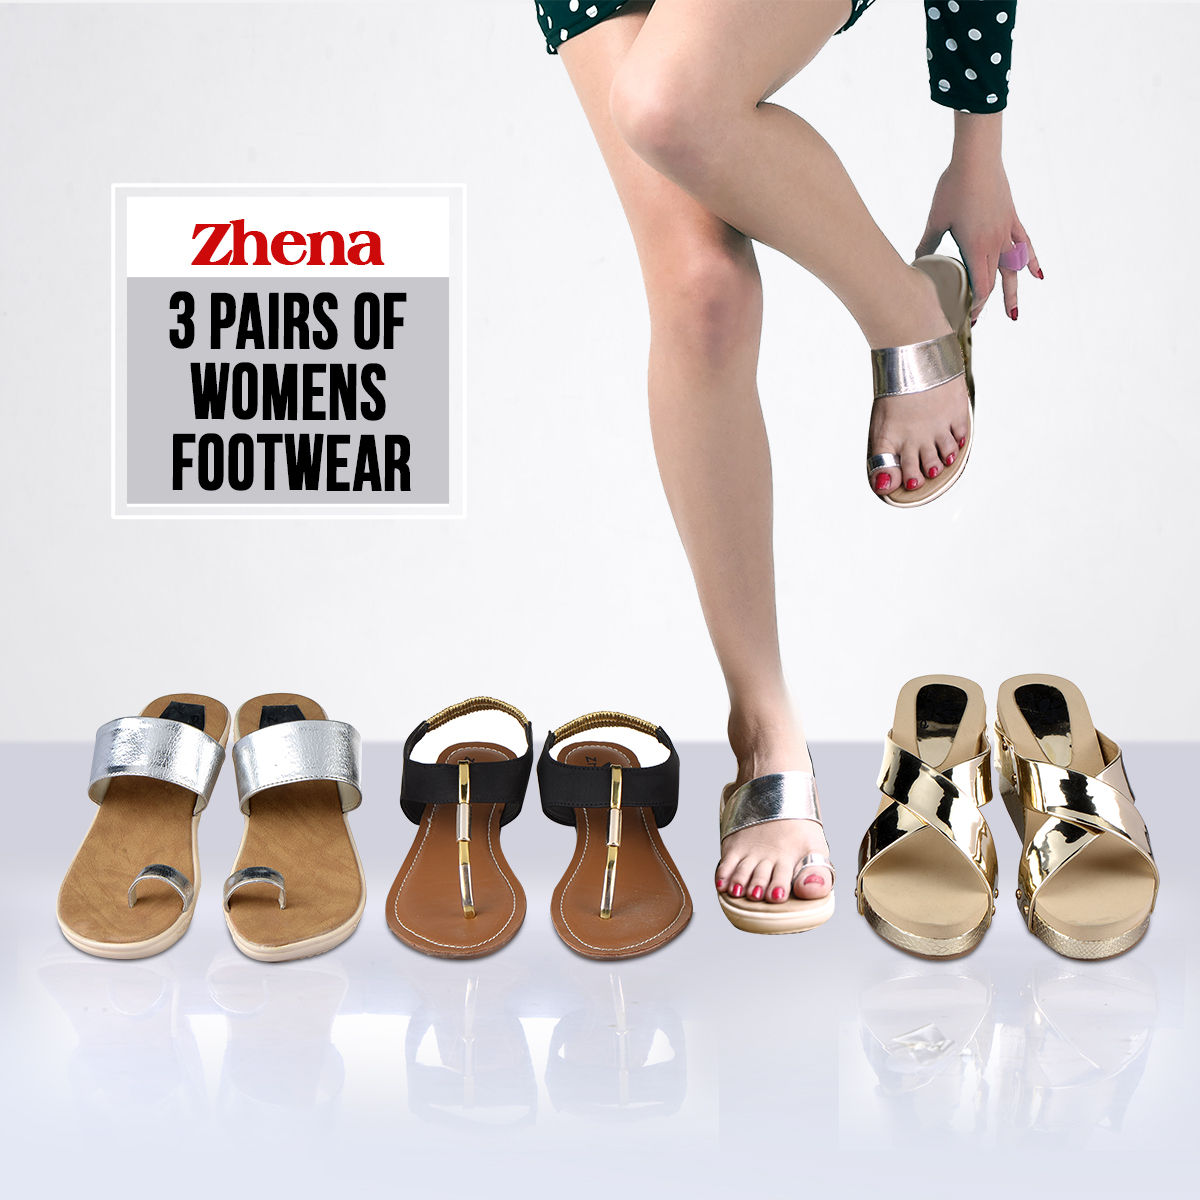 7baa844ba3316a Buy Zhena 3 Pairs of Women s Footwear Online at Best Price in India on  Naaptol.com